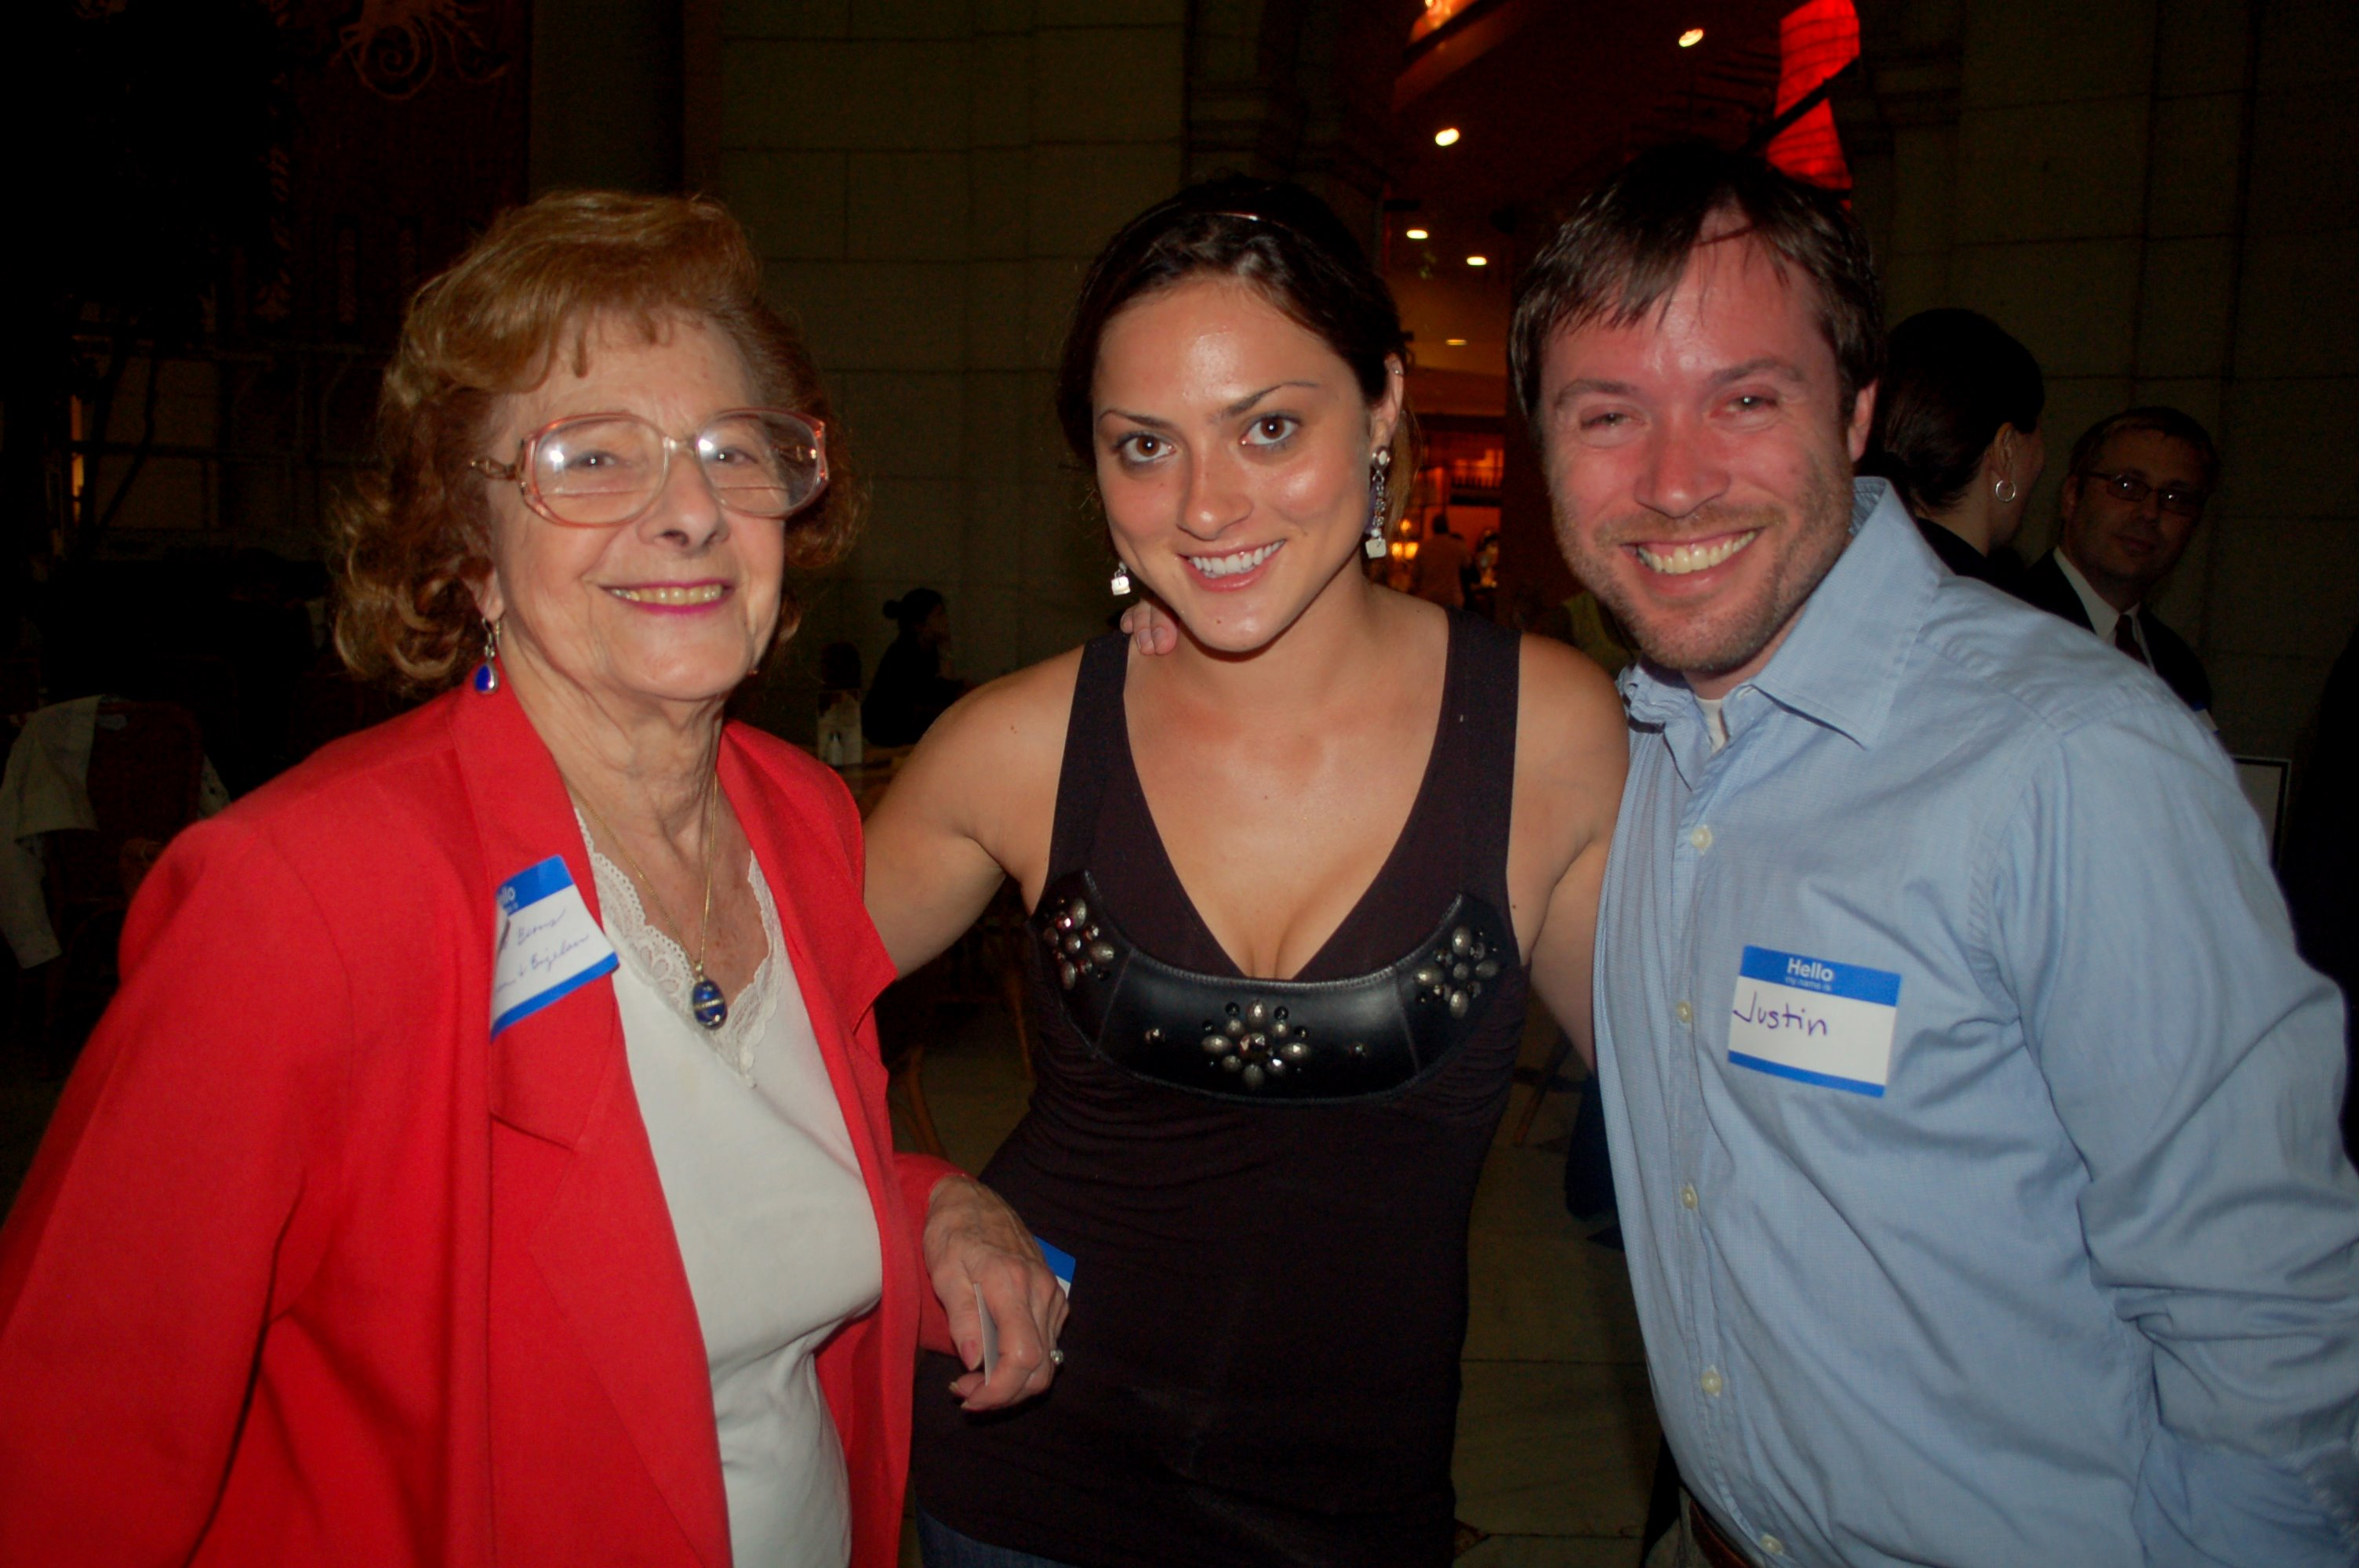 05-2010-rebekah-and-gang-in-dc-2.jpg